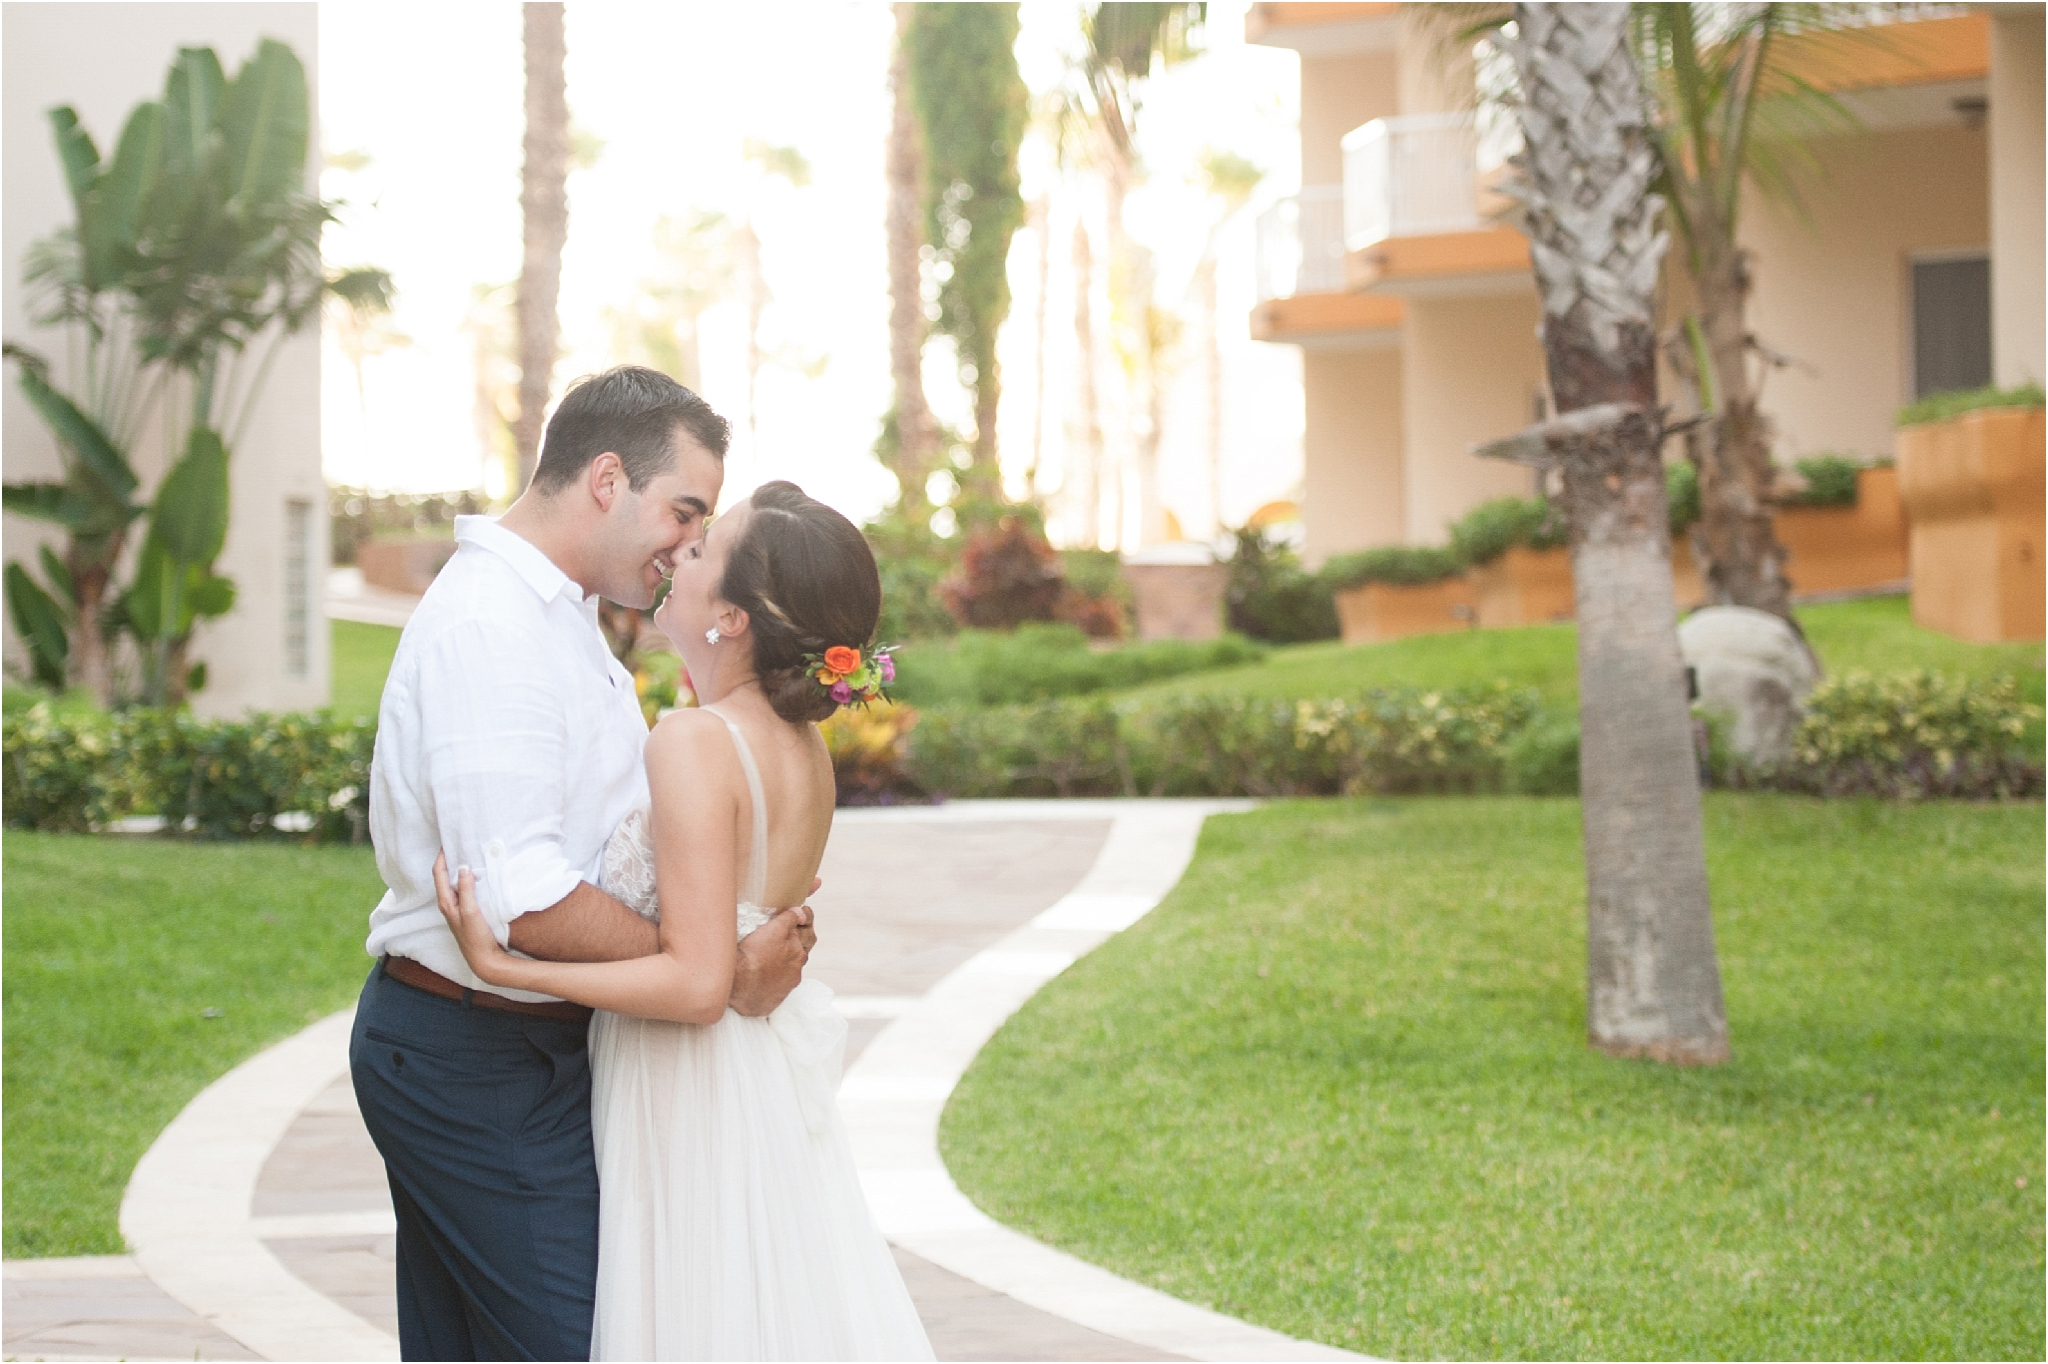 kayla kitts photography - albuquerque wedding photographer - new mexico wedding photographer - desination wedding photographer - cabo wedding photographer_0064.jpg